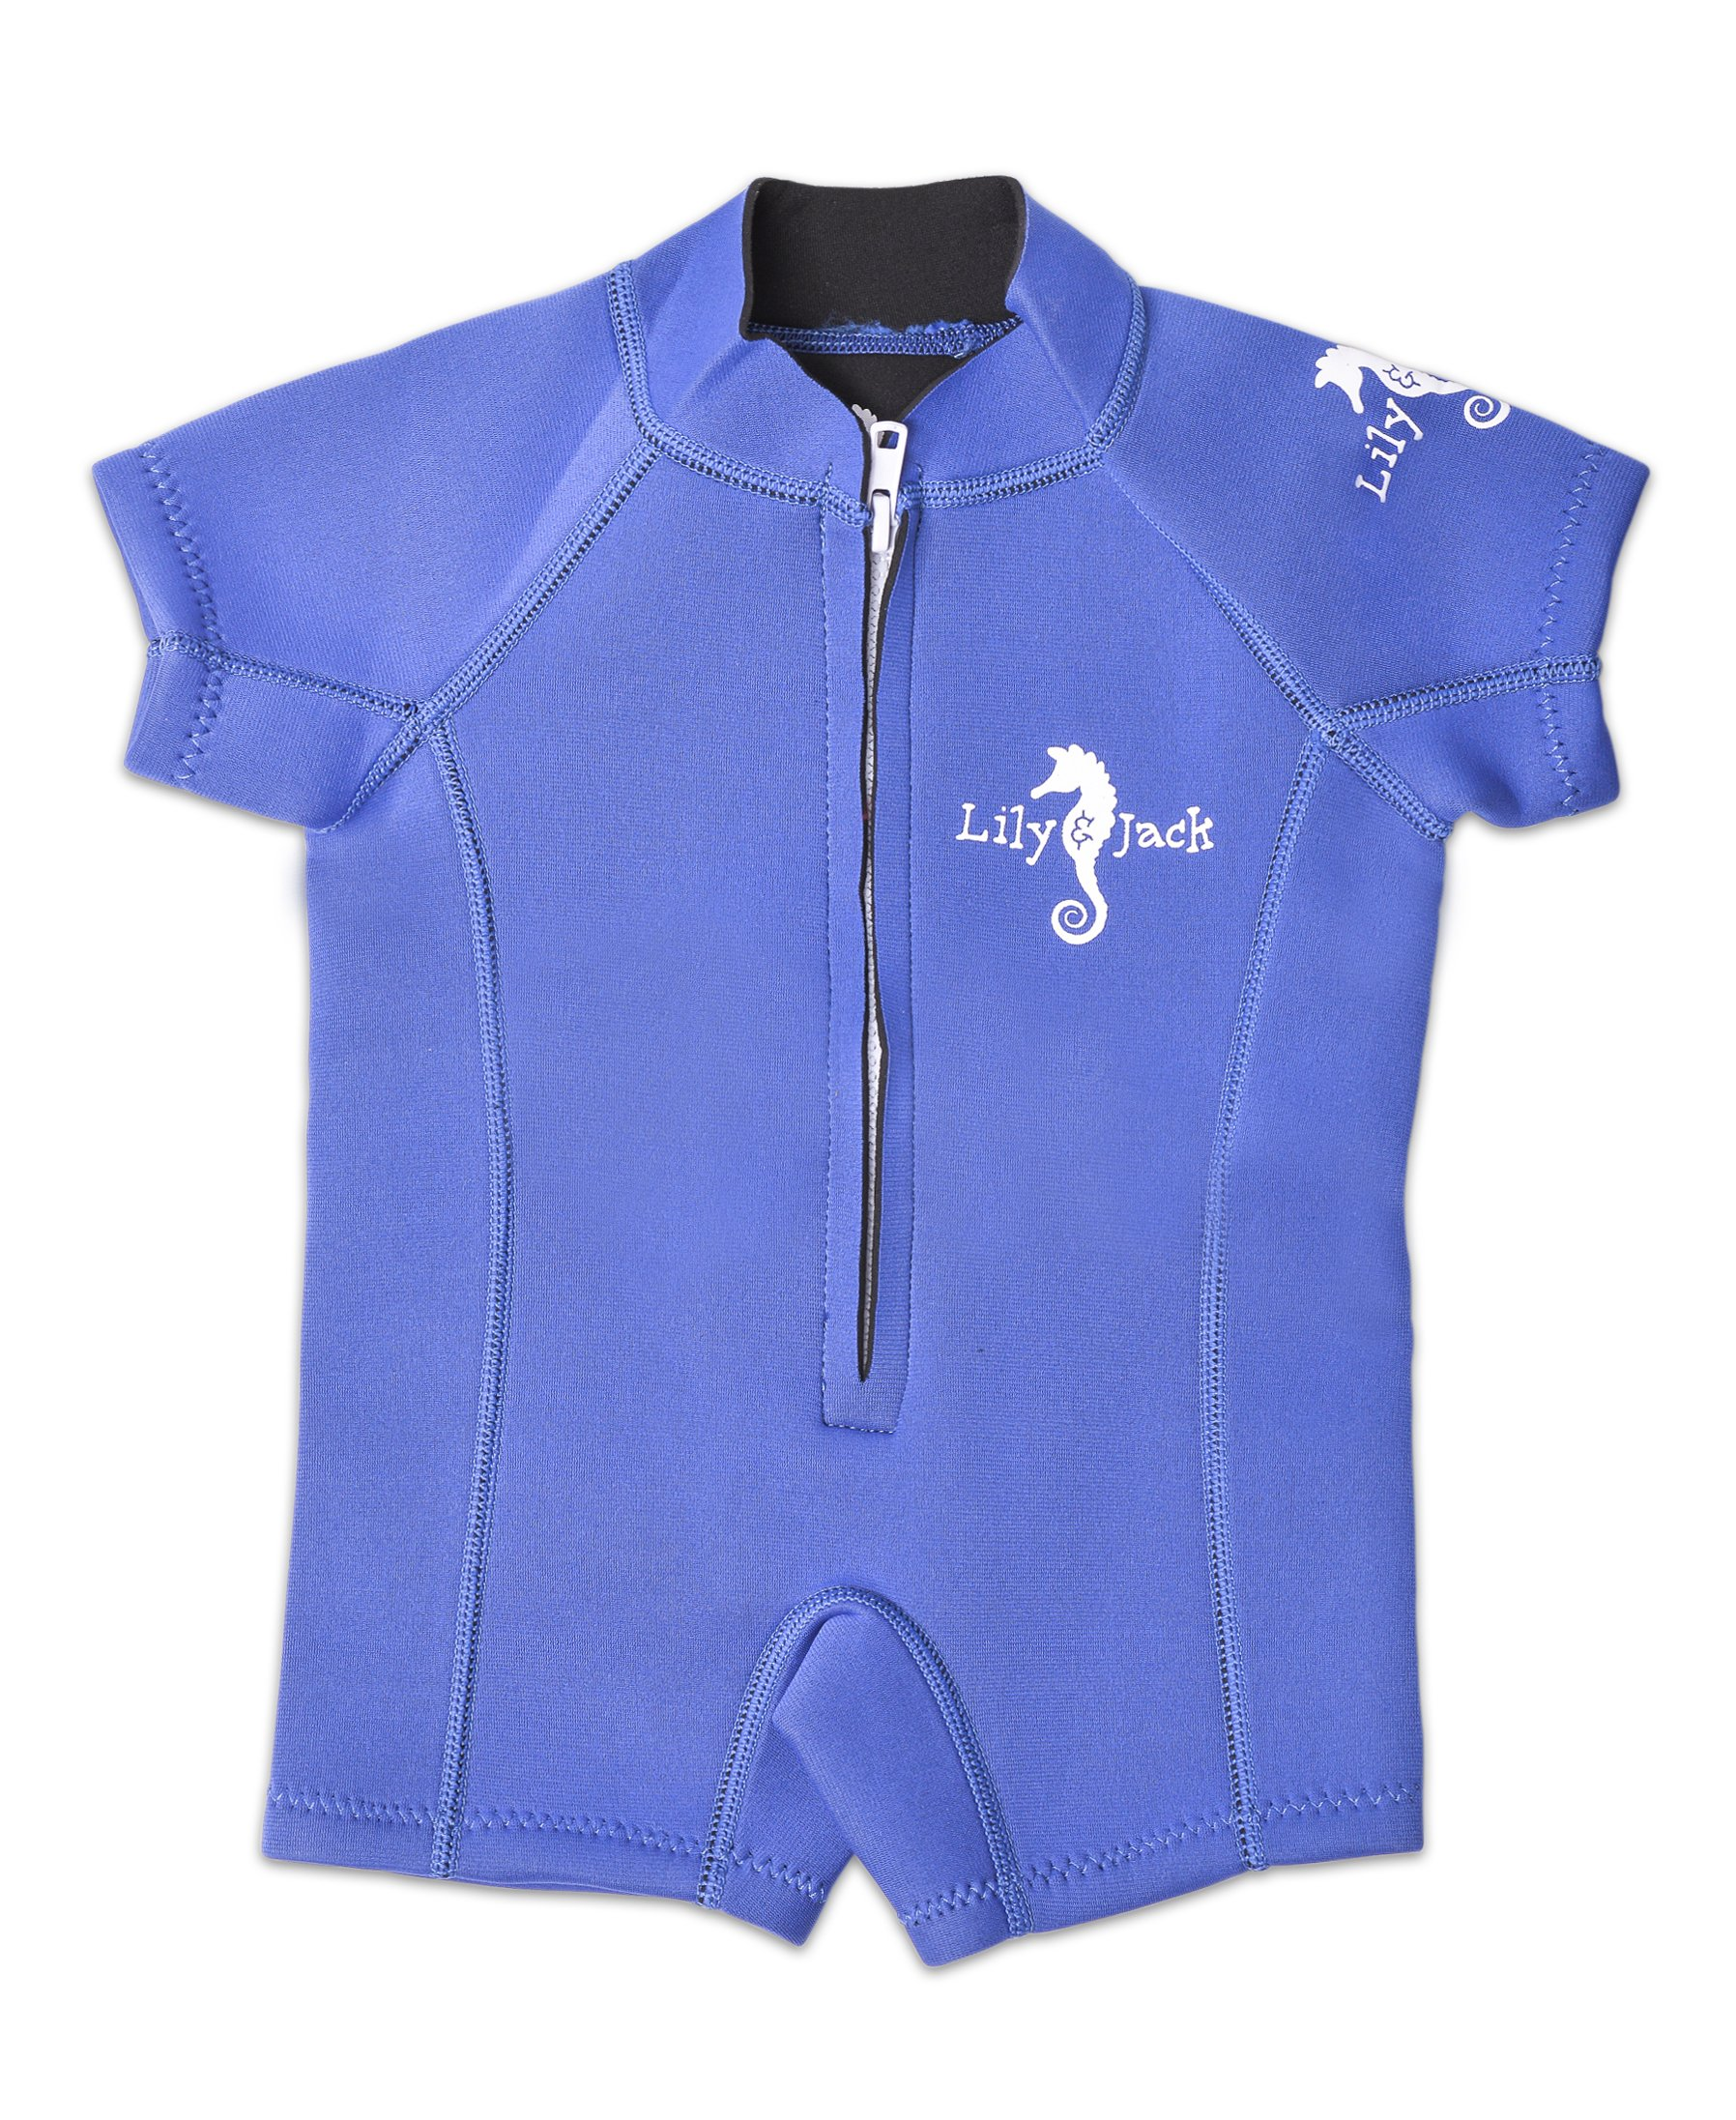 Lily&Jack Baby Swimsuit/Wetsuit. Swimwear for Boy and Girl Toddlers with UV Protection. (X-Small / 6-12 Months, Blue) by Lily&Jack